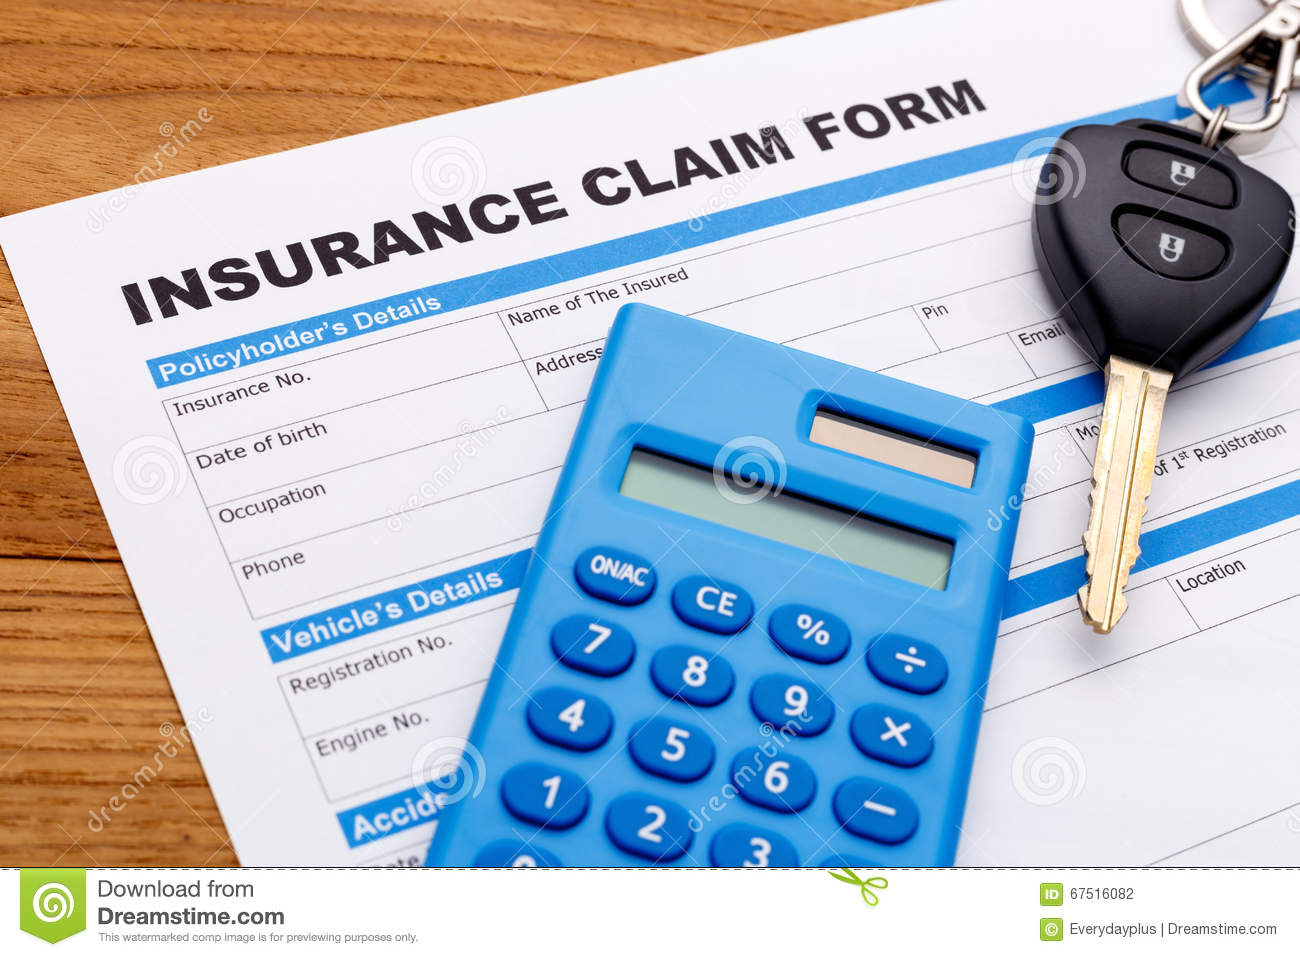 Car Insurance Claim Stock Photo Image Of Paperwork Form 67516082